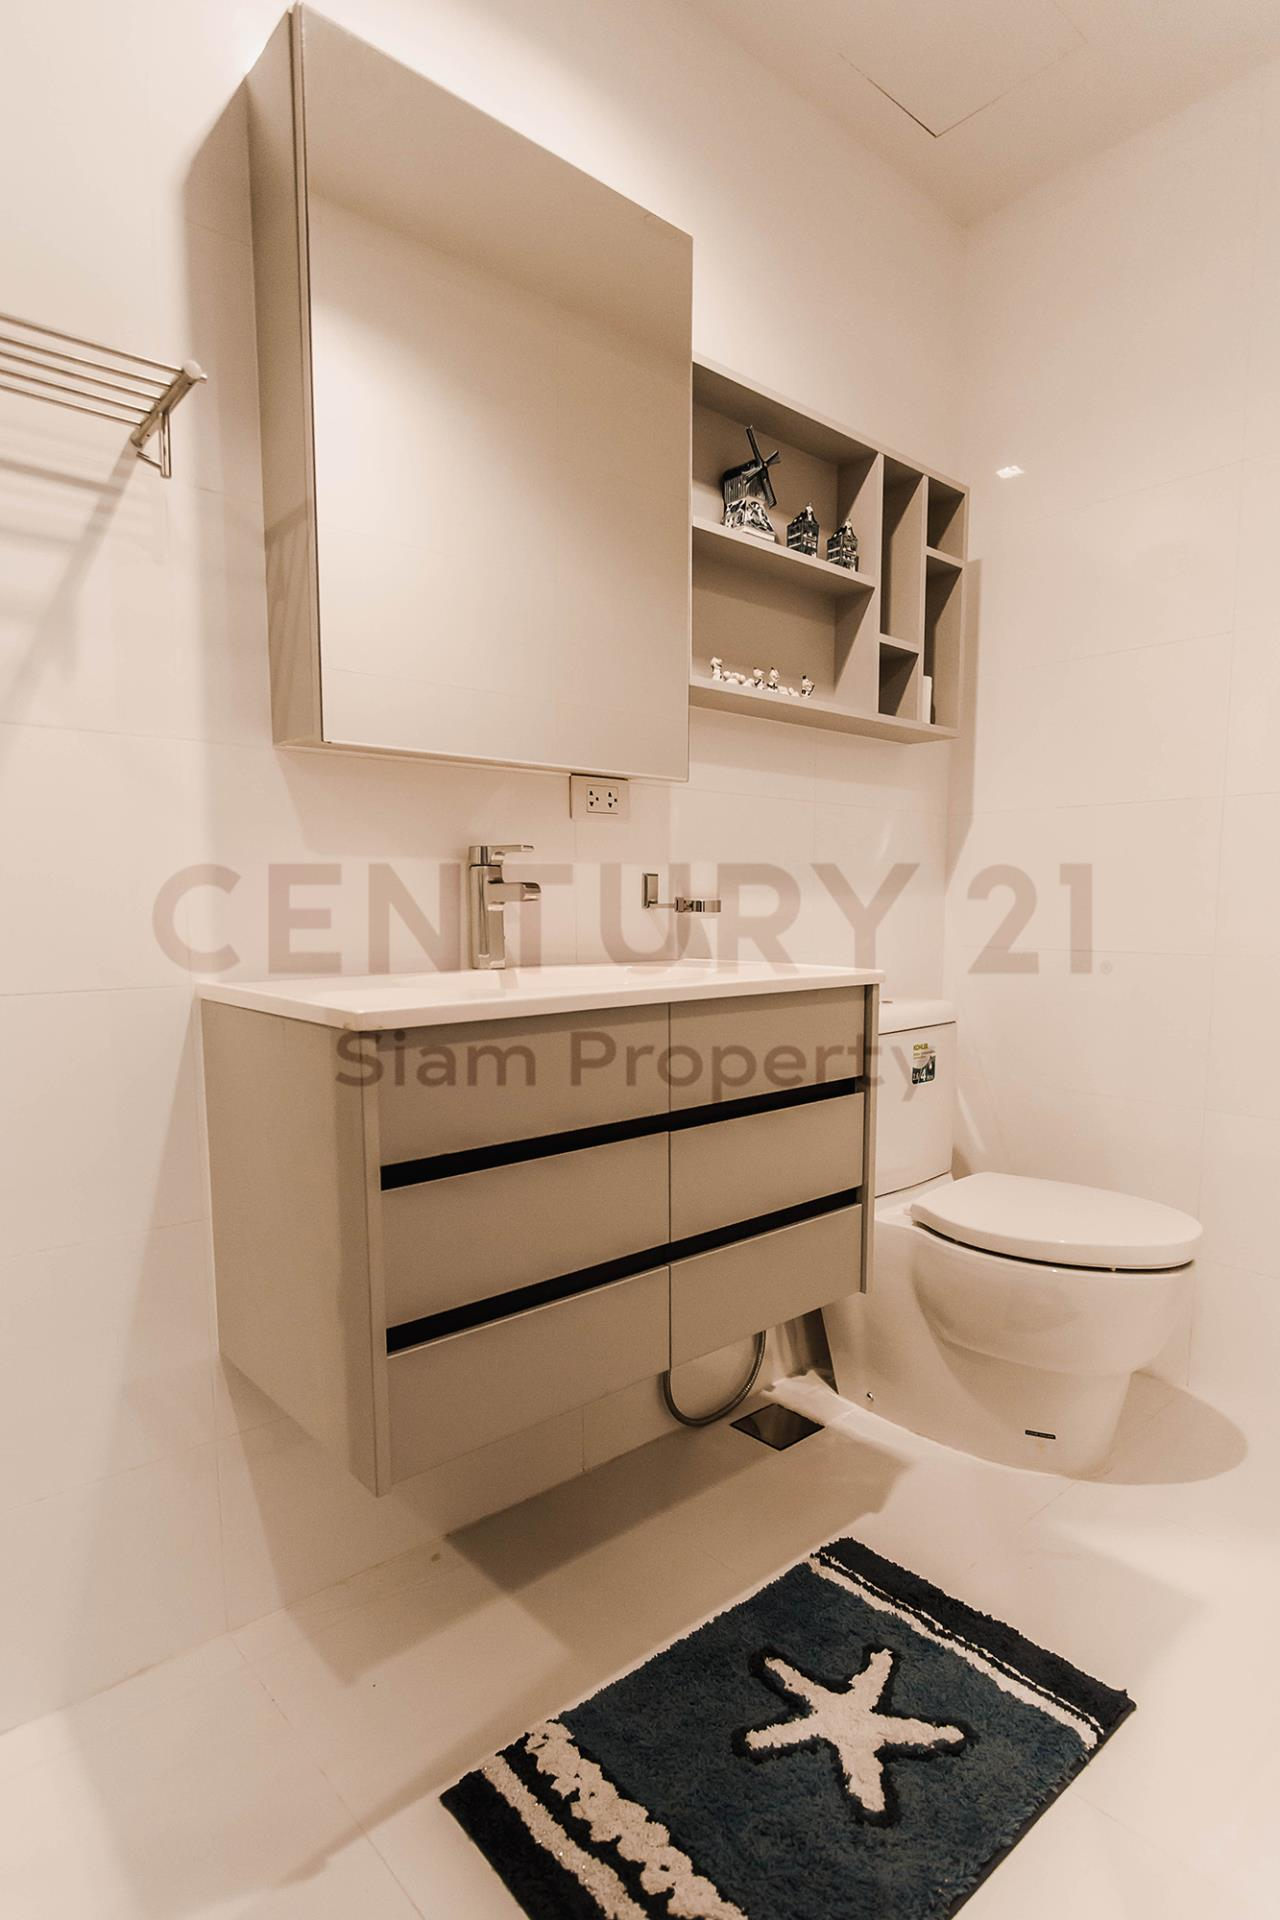 Century21 Siam Property Agency's HQ 15